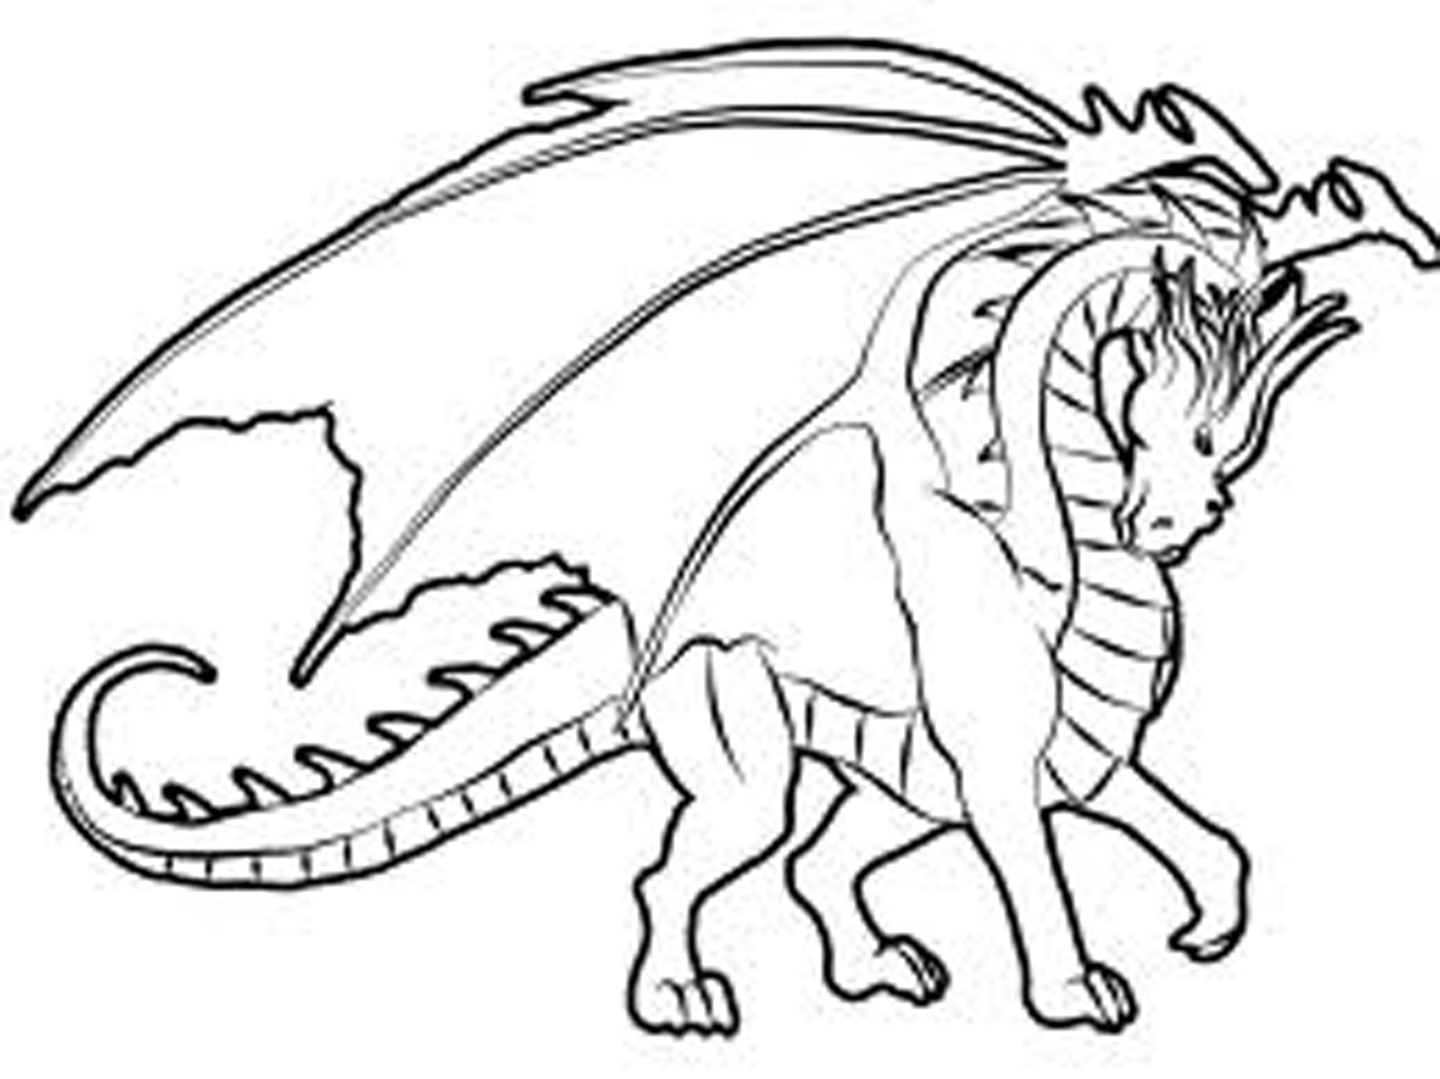 Free Horse Coloring Pages for Kids PrintActivities  - horse coloring pages to print for free